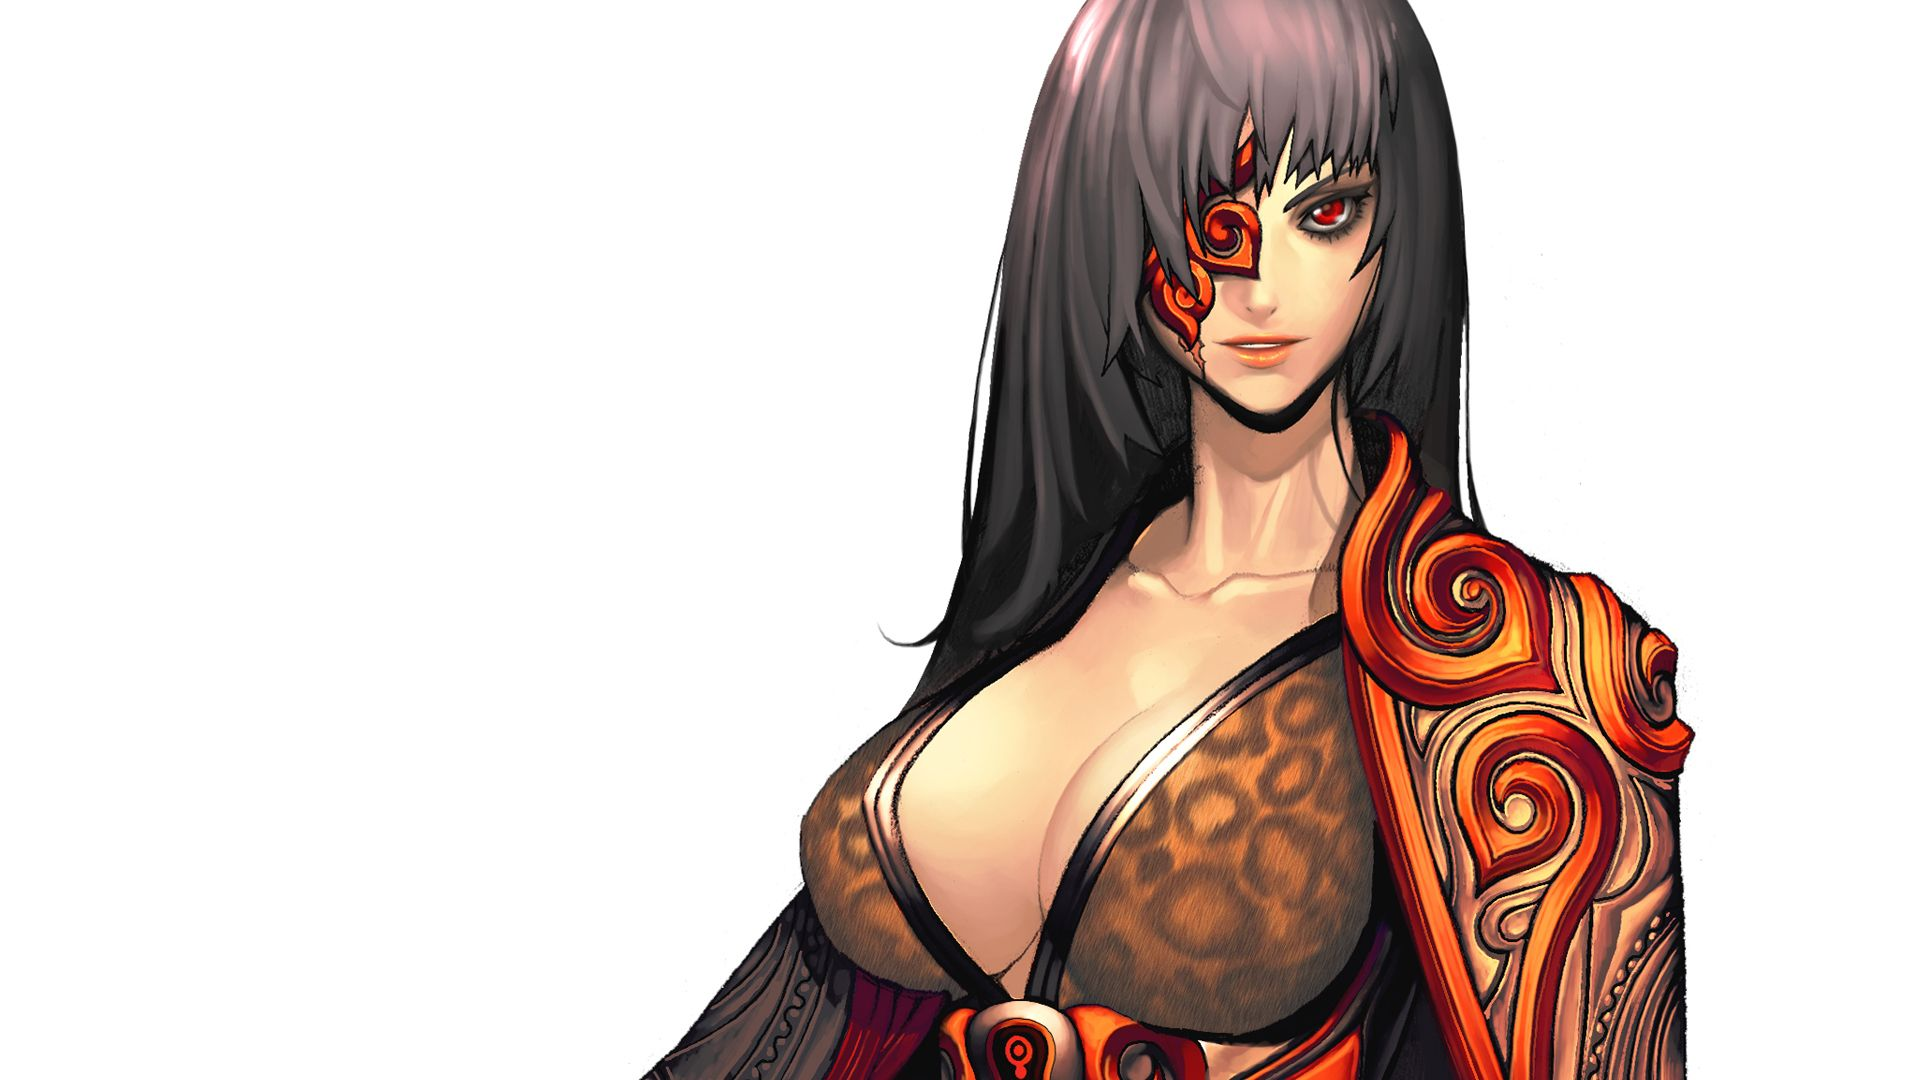 Blade and soul naughty mod erotic images